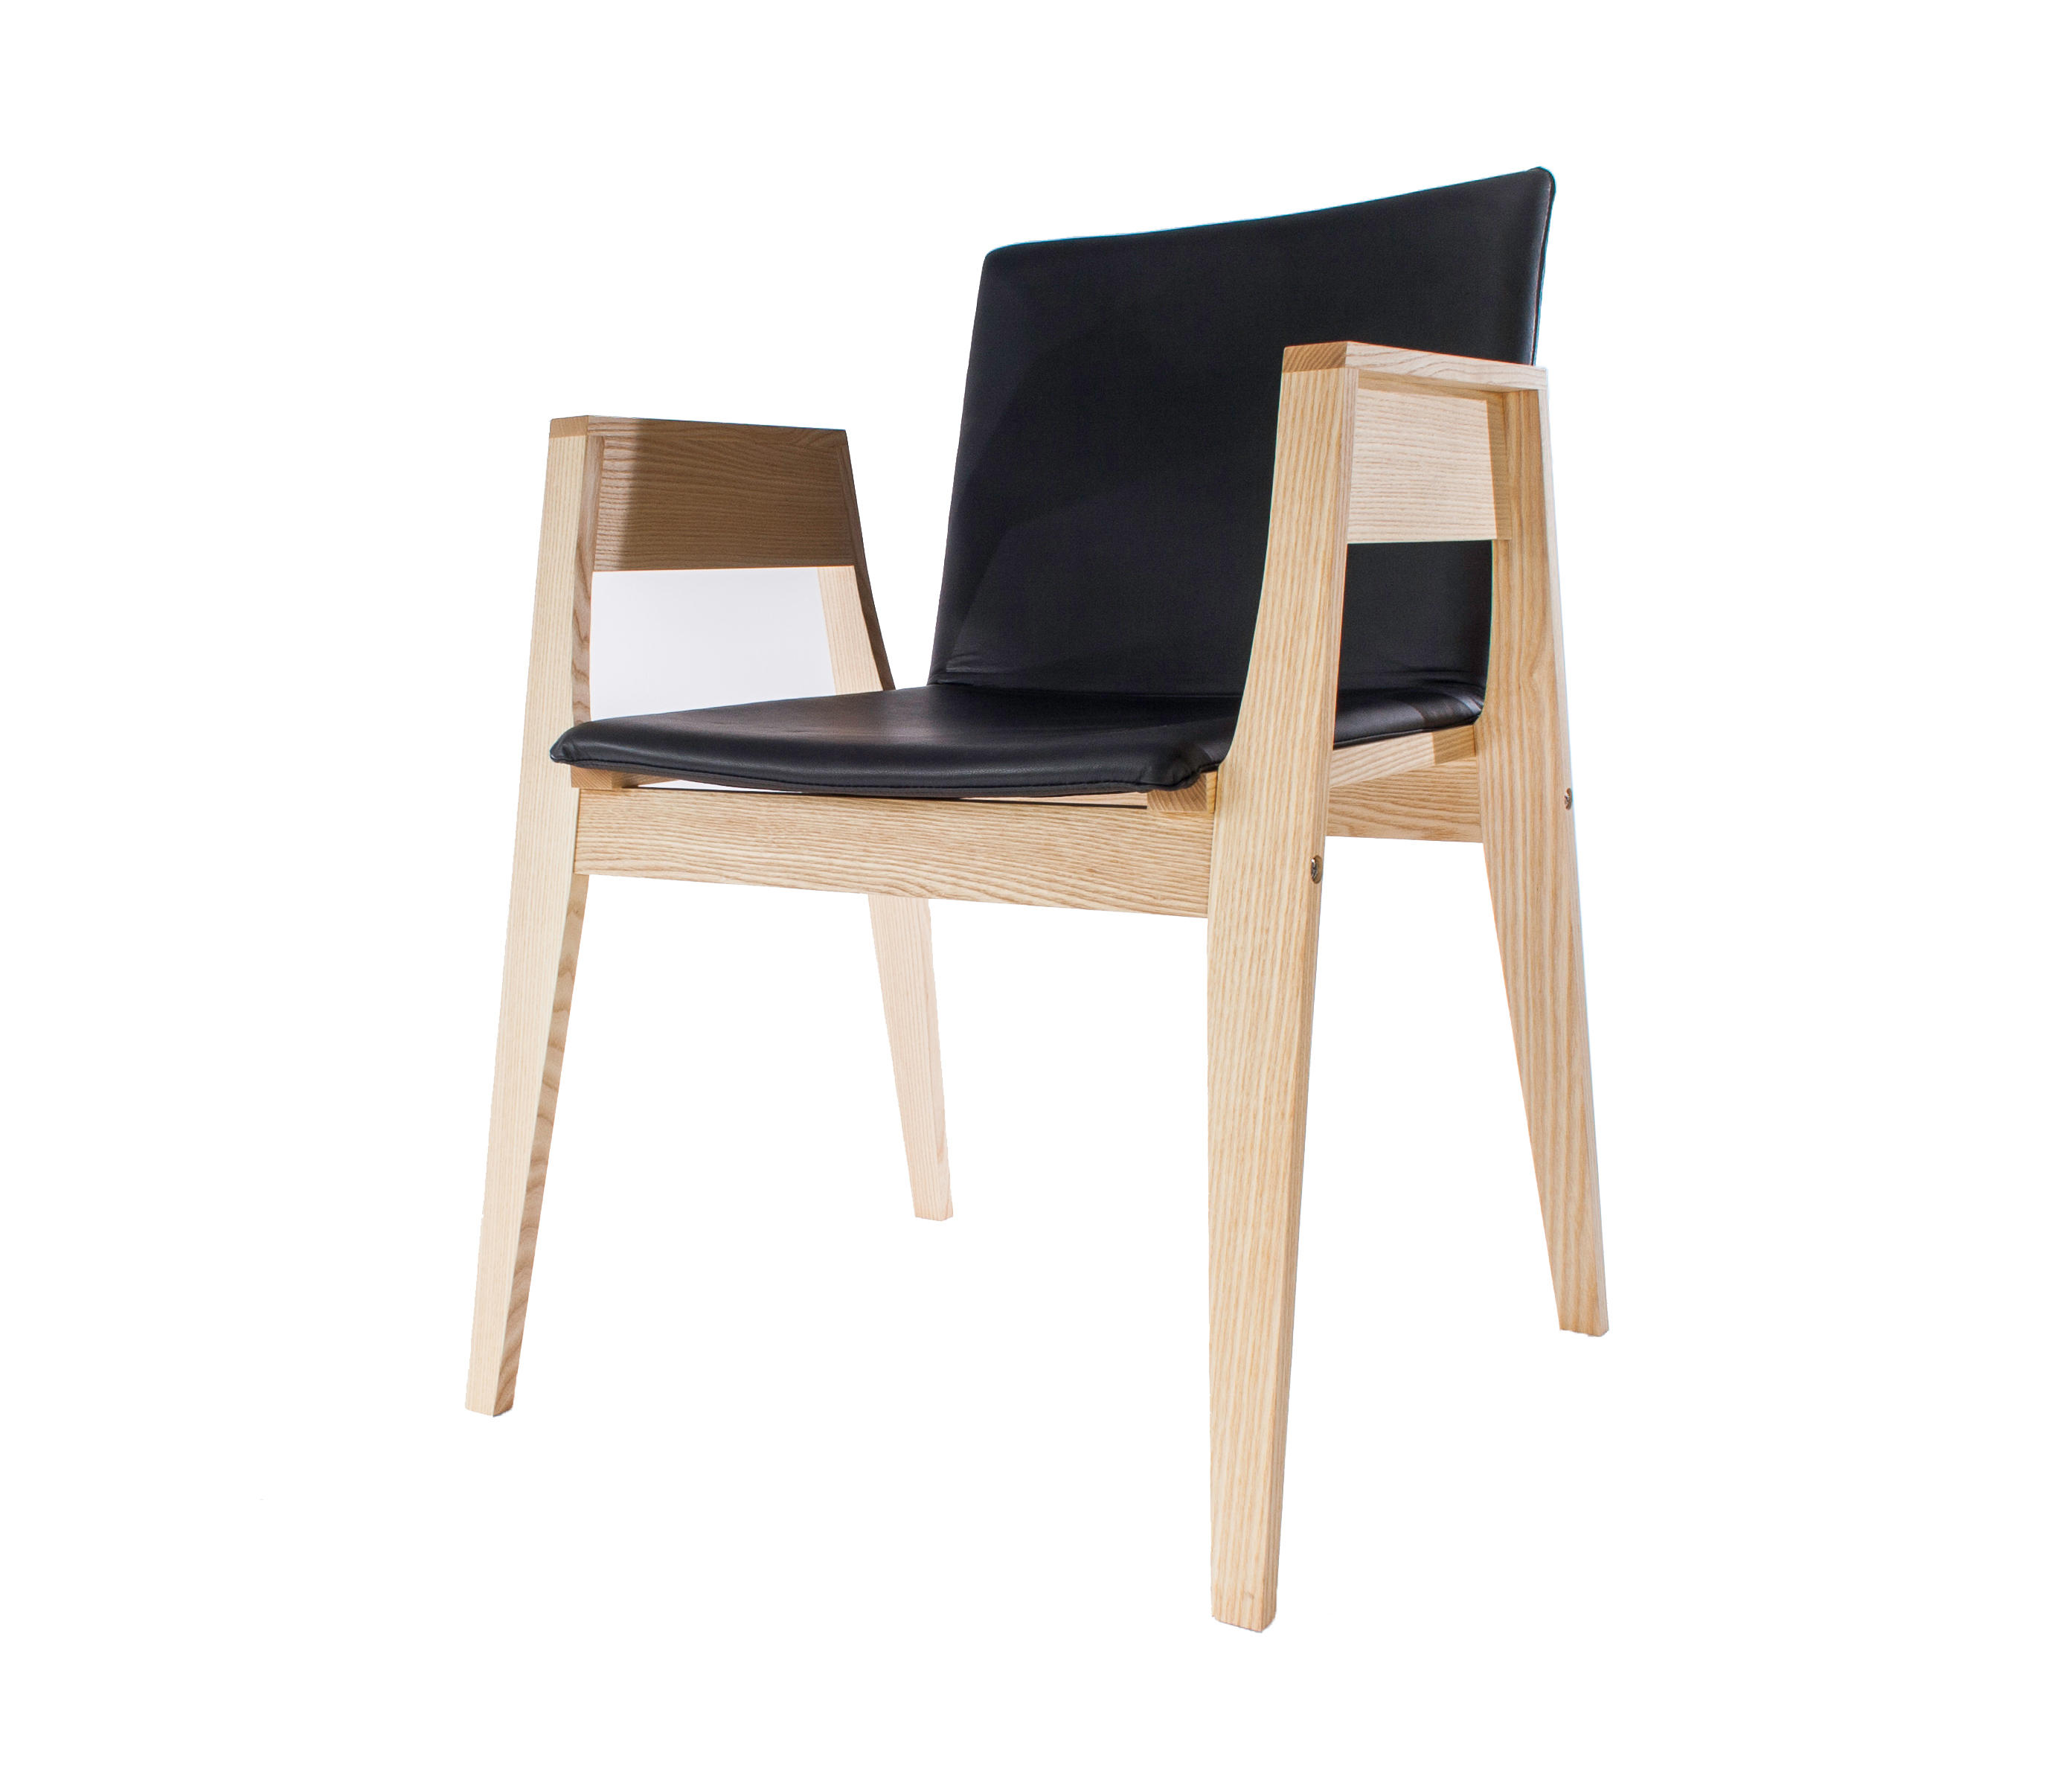 seattle chair chairs from museum library furniture architonic